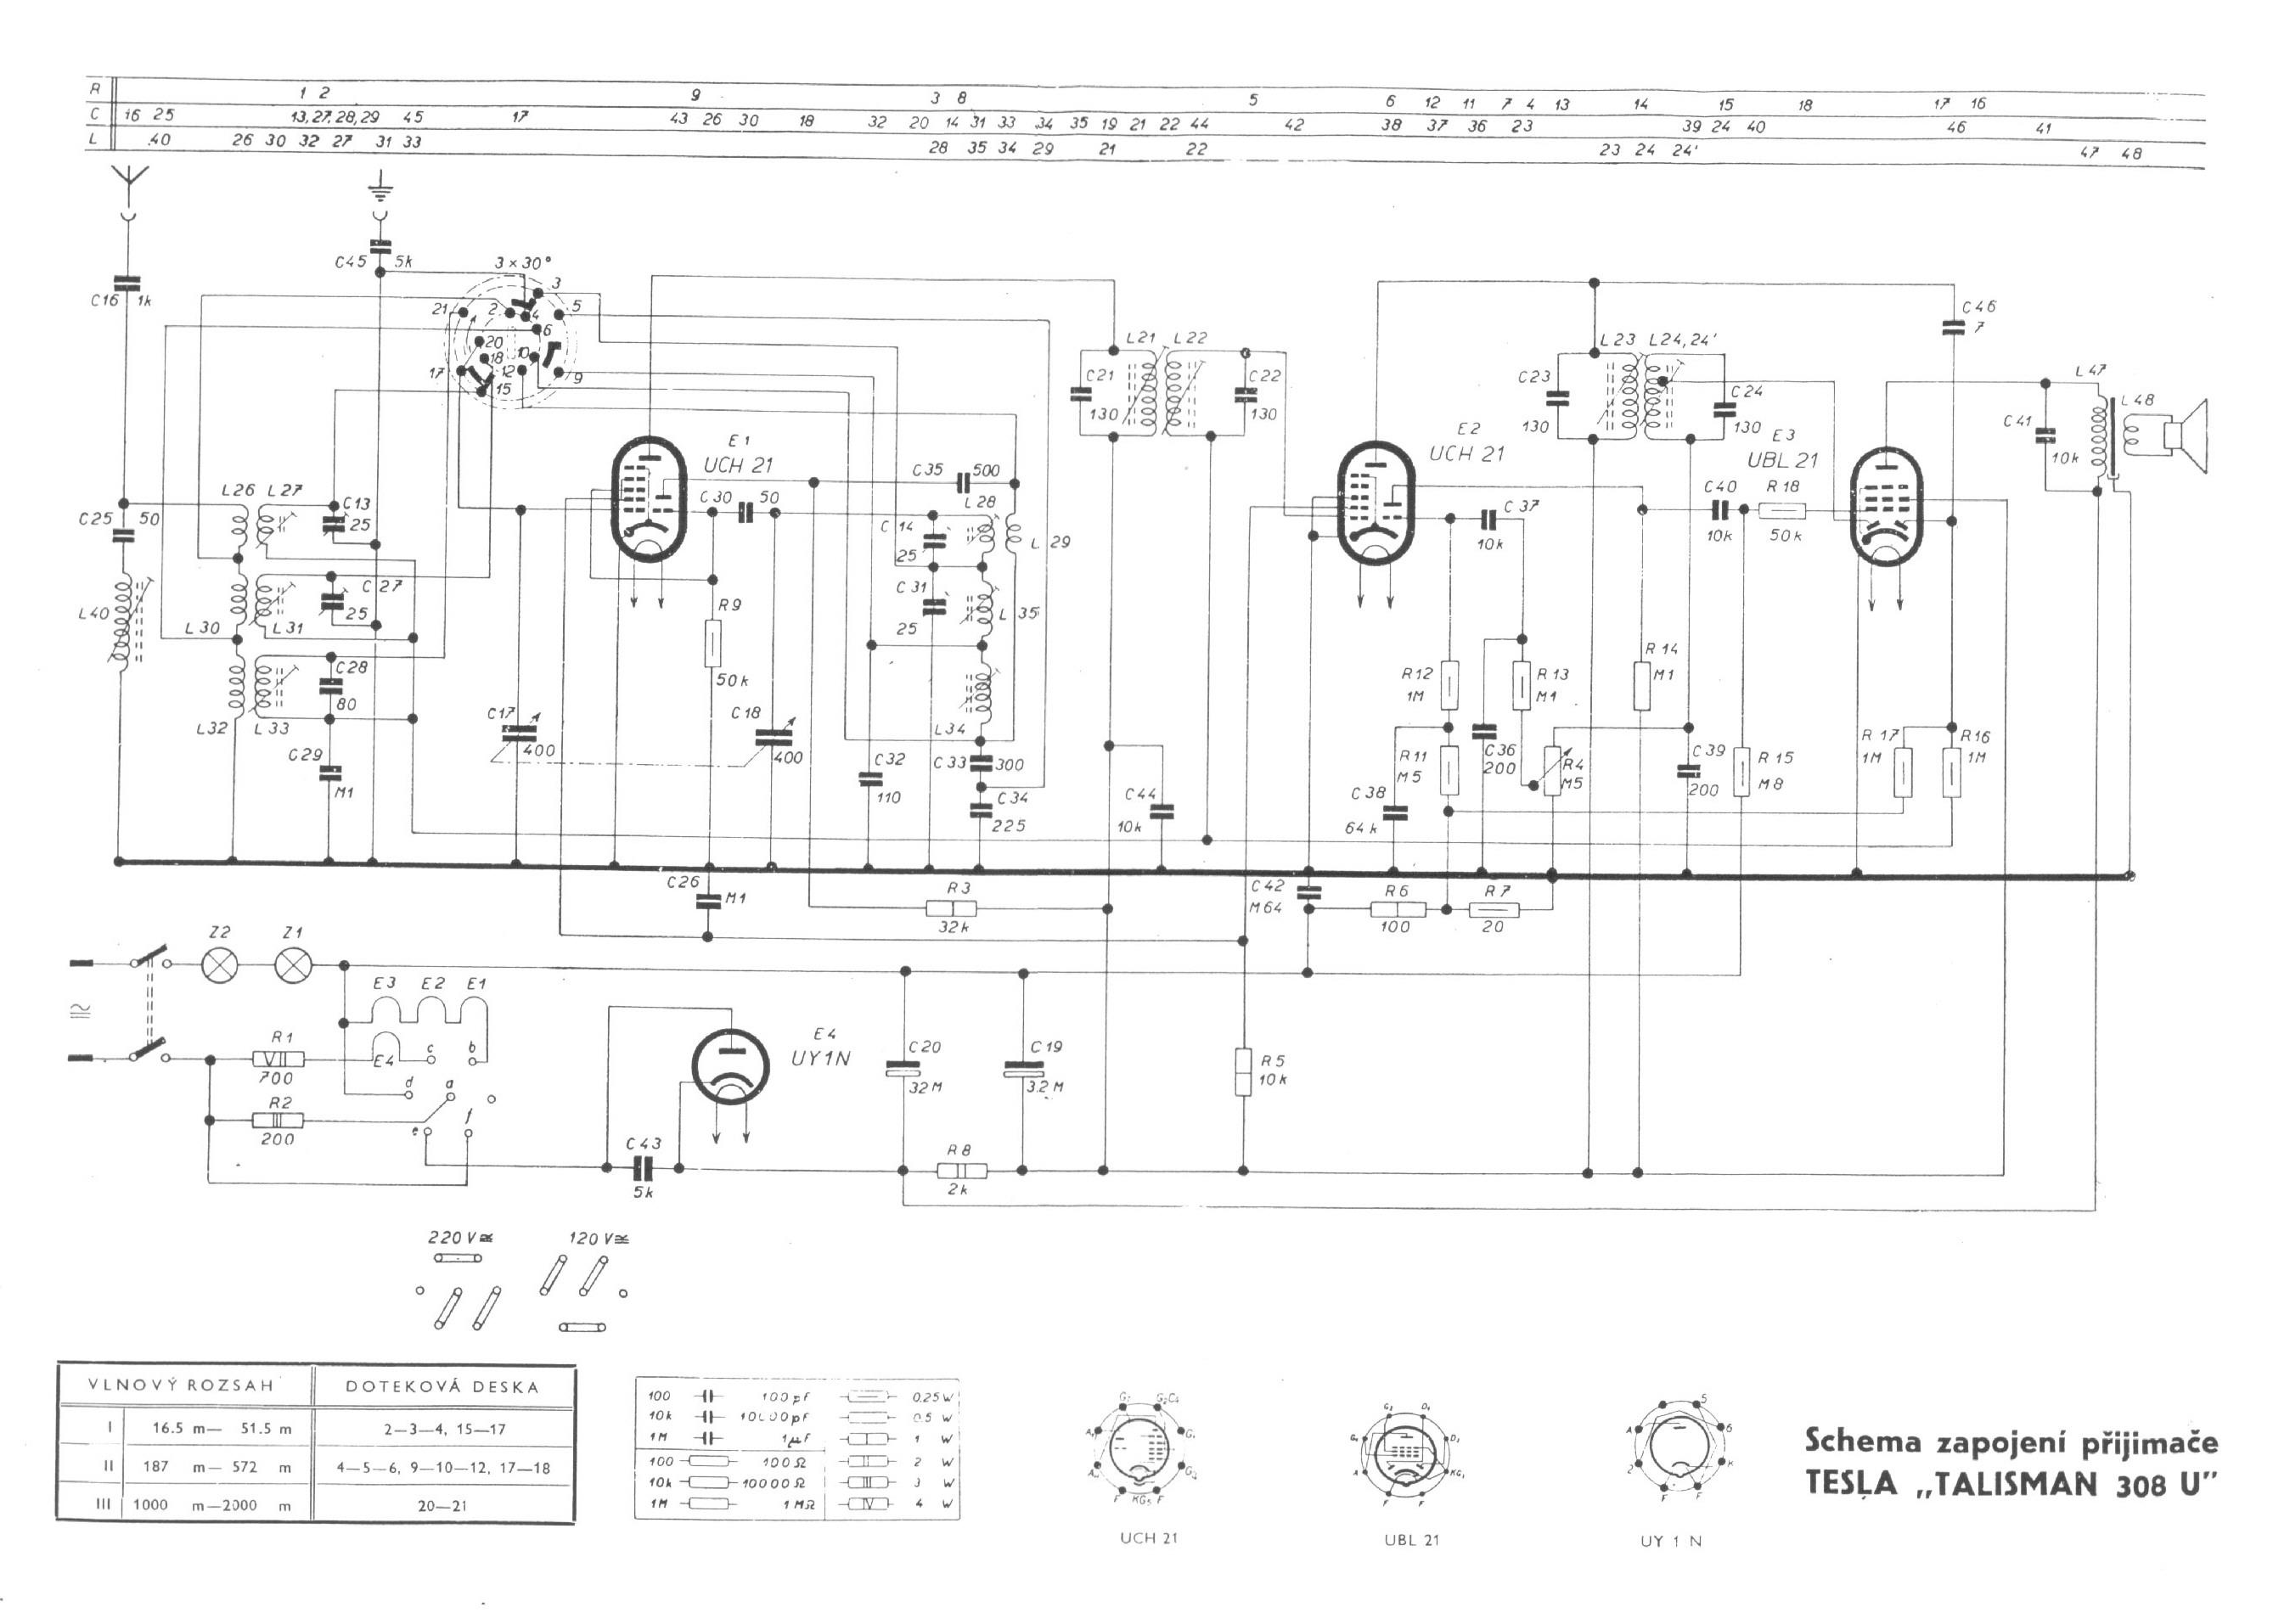 wiring diagram for lennox model g1203e 110 6  u2013 readingrat net